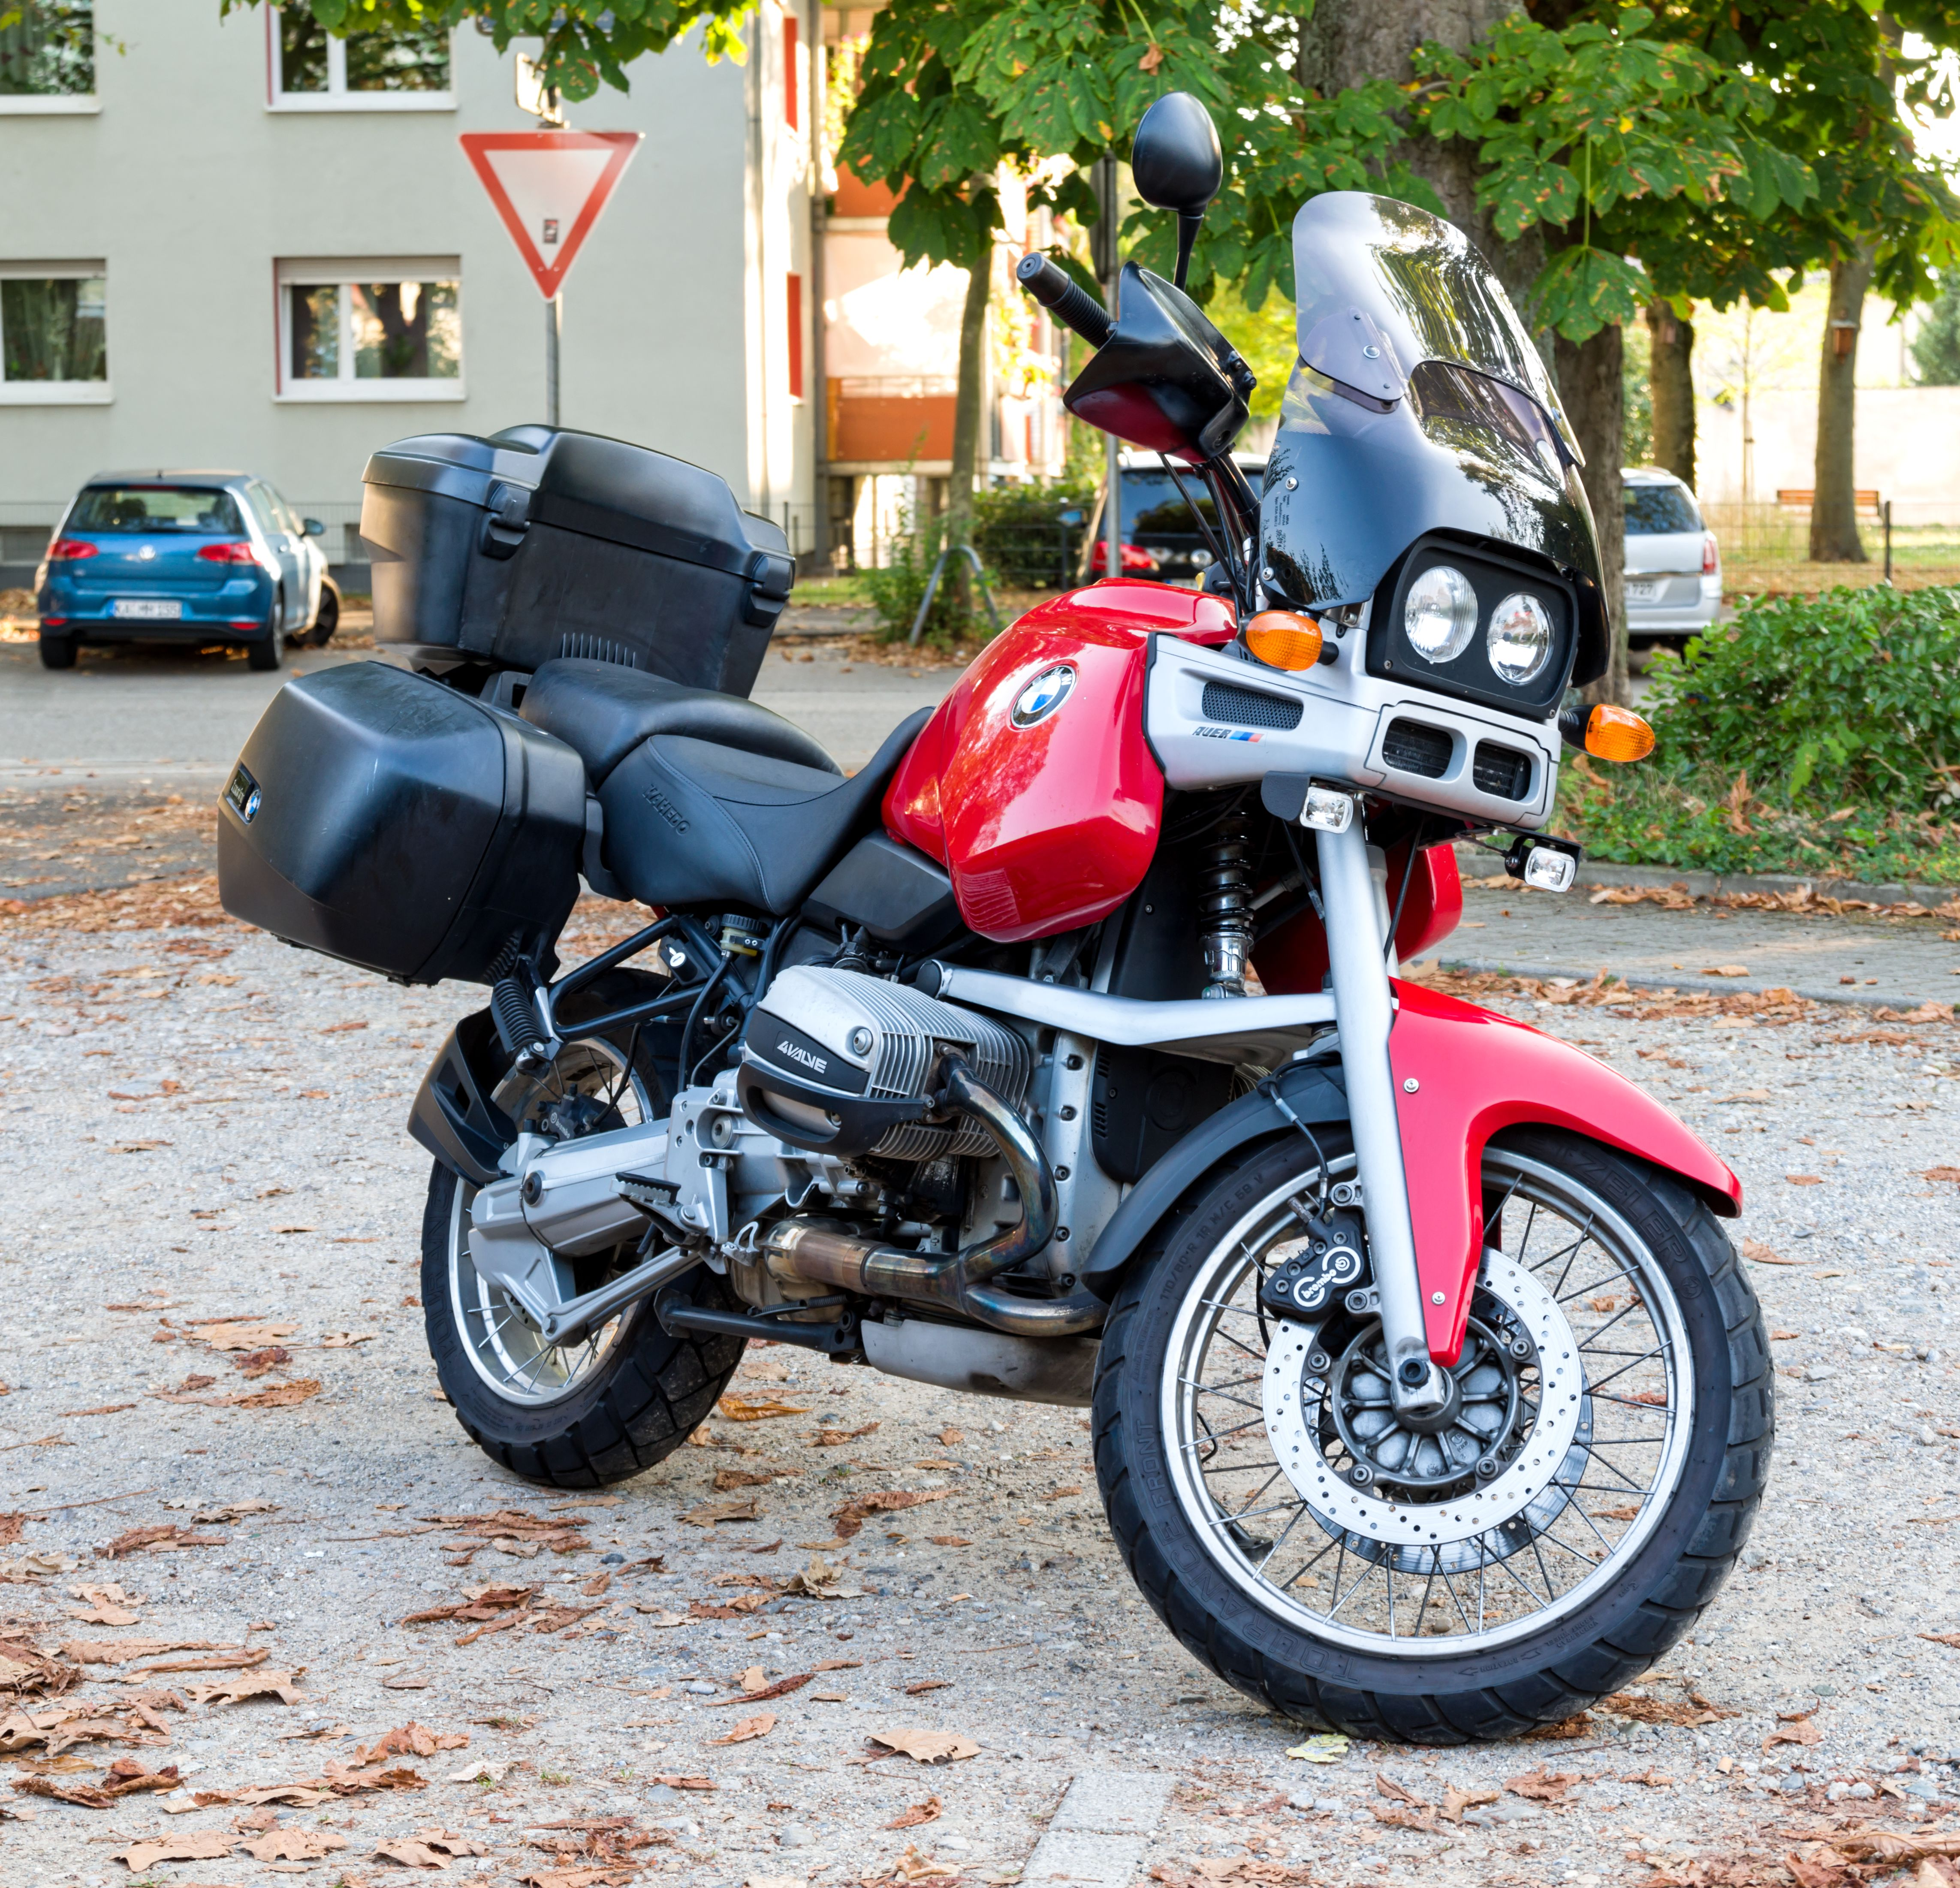 file bmw r1100gs wikimedia commons. Black Bedroom Furniture Sets. Home Design Ideas